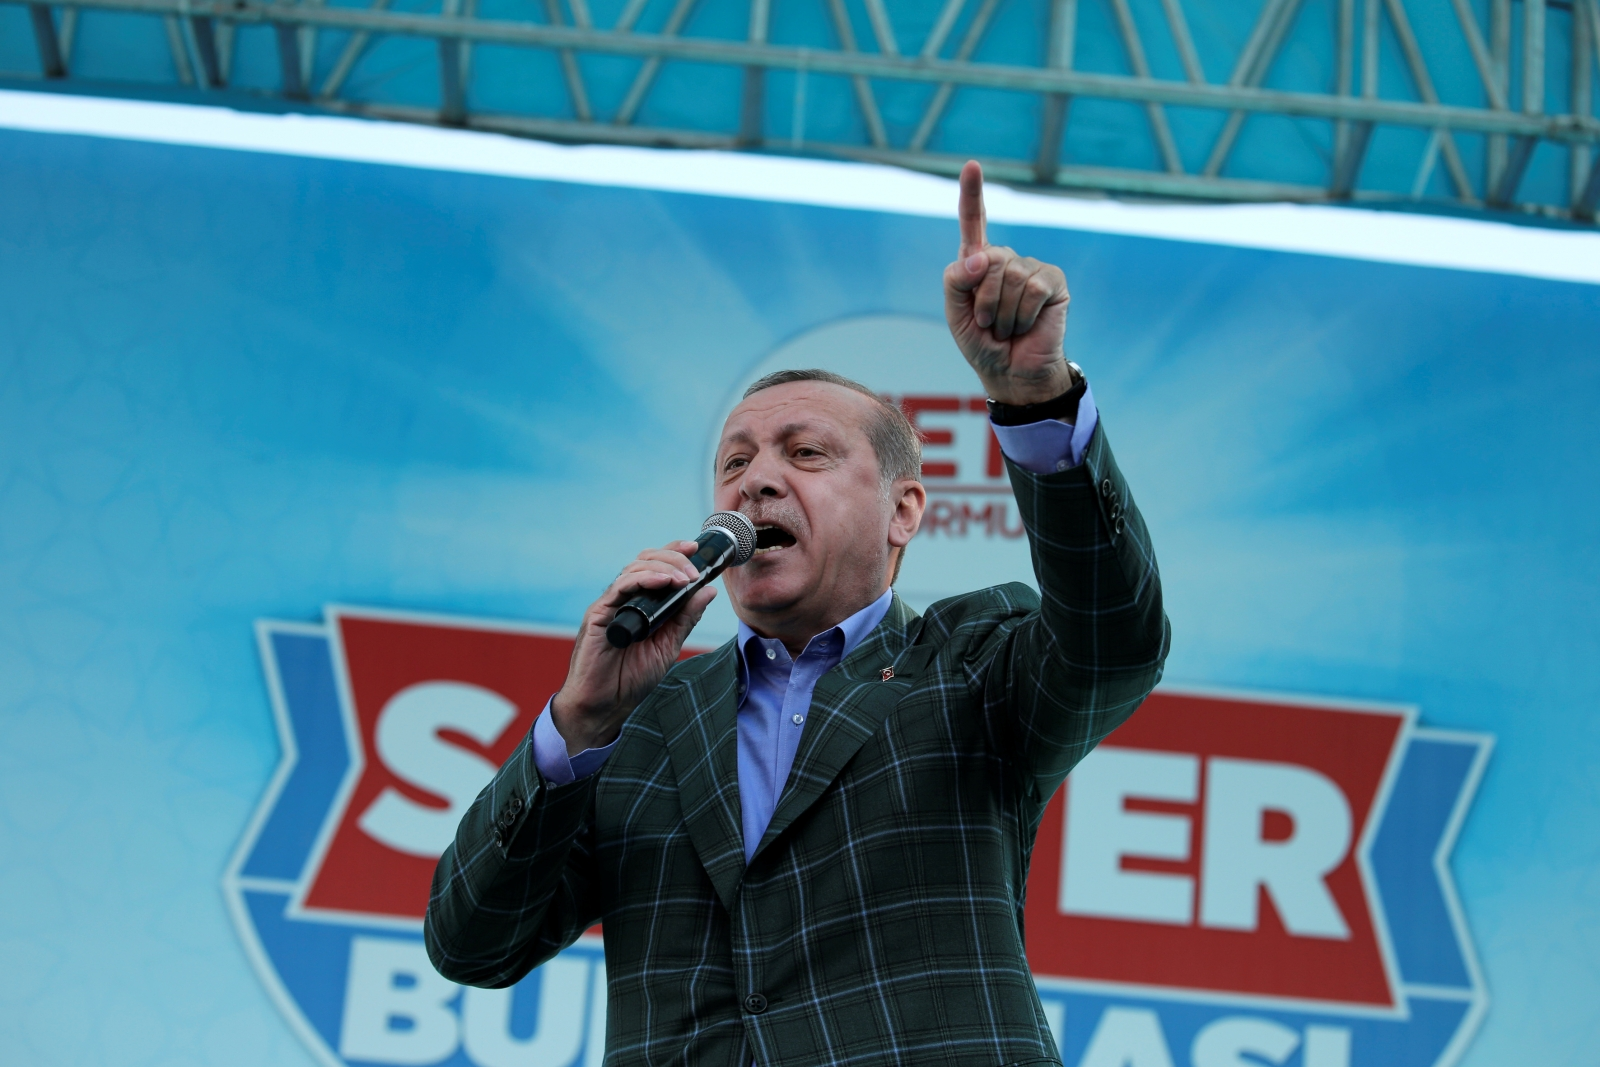 Erdogan wins Turkey referendum